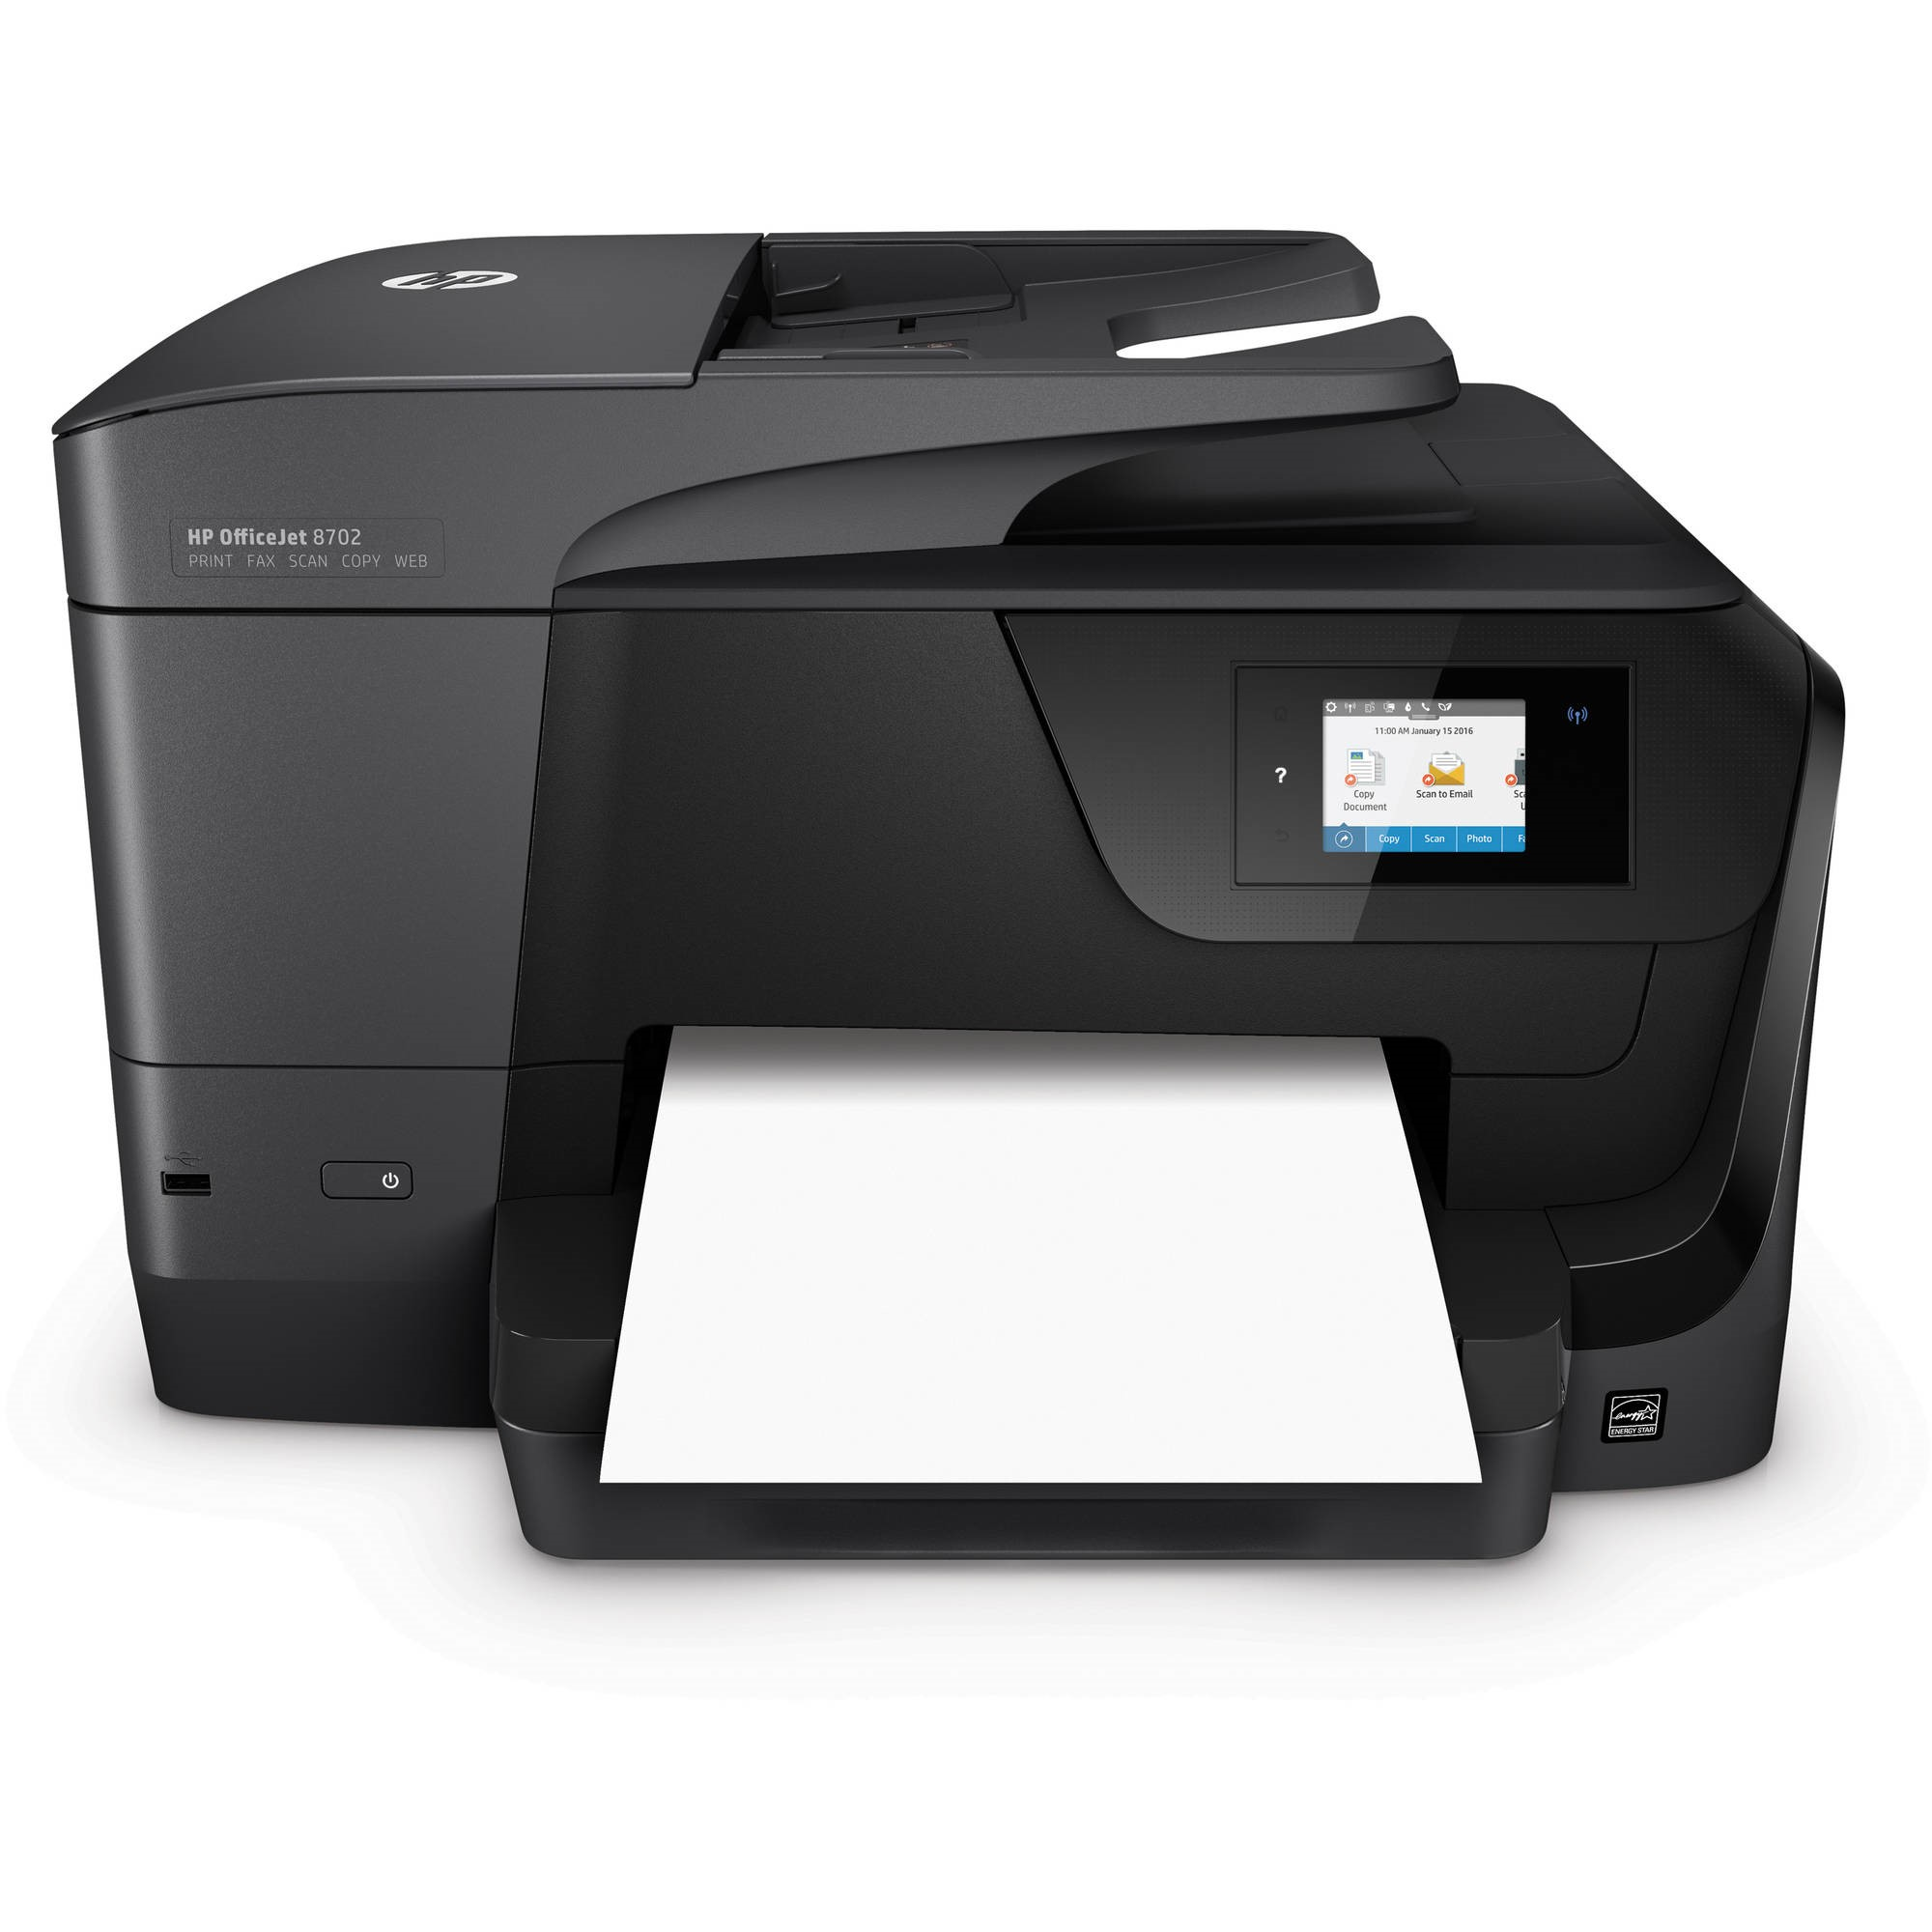 HP OfficeJet 8702 Wireless All-in-One Printer (M9L81A) - Walmart com